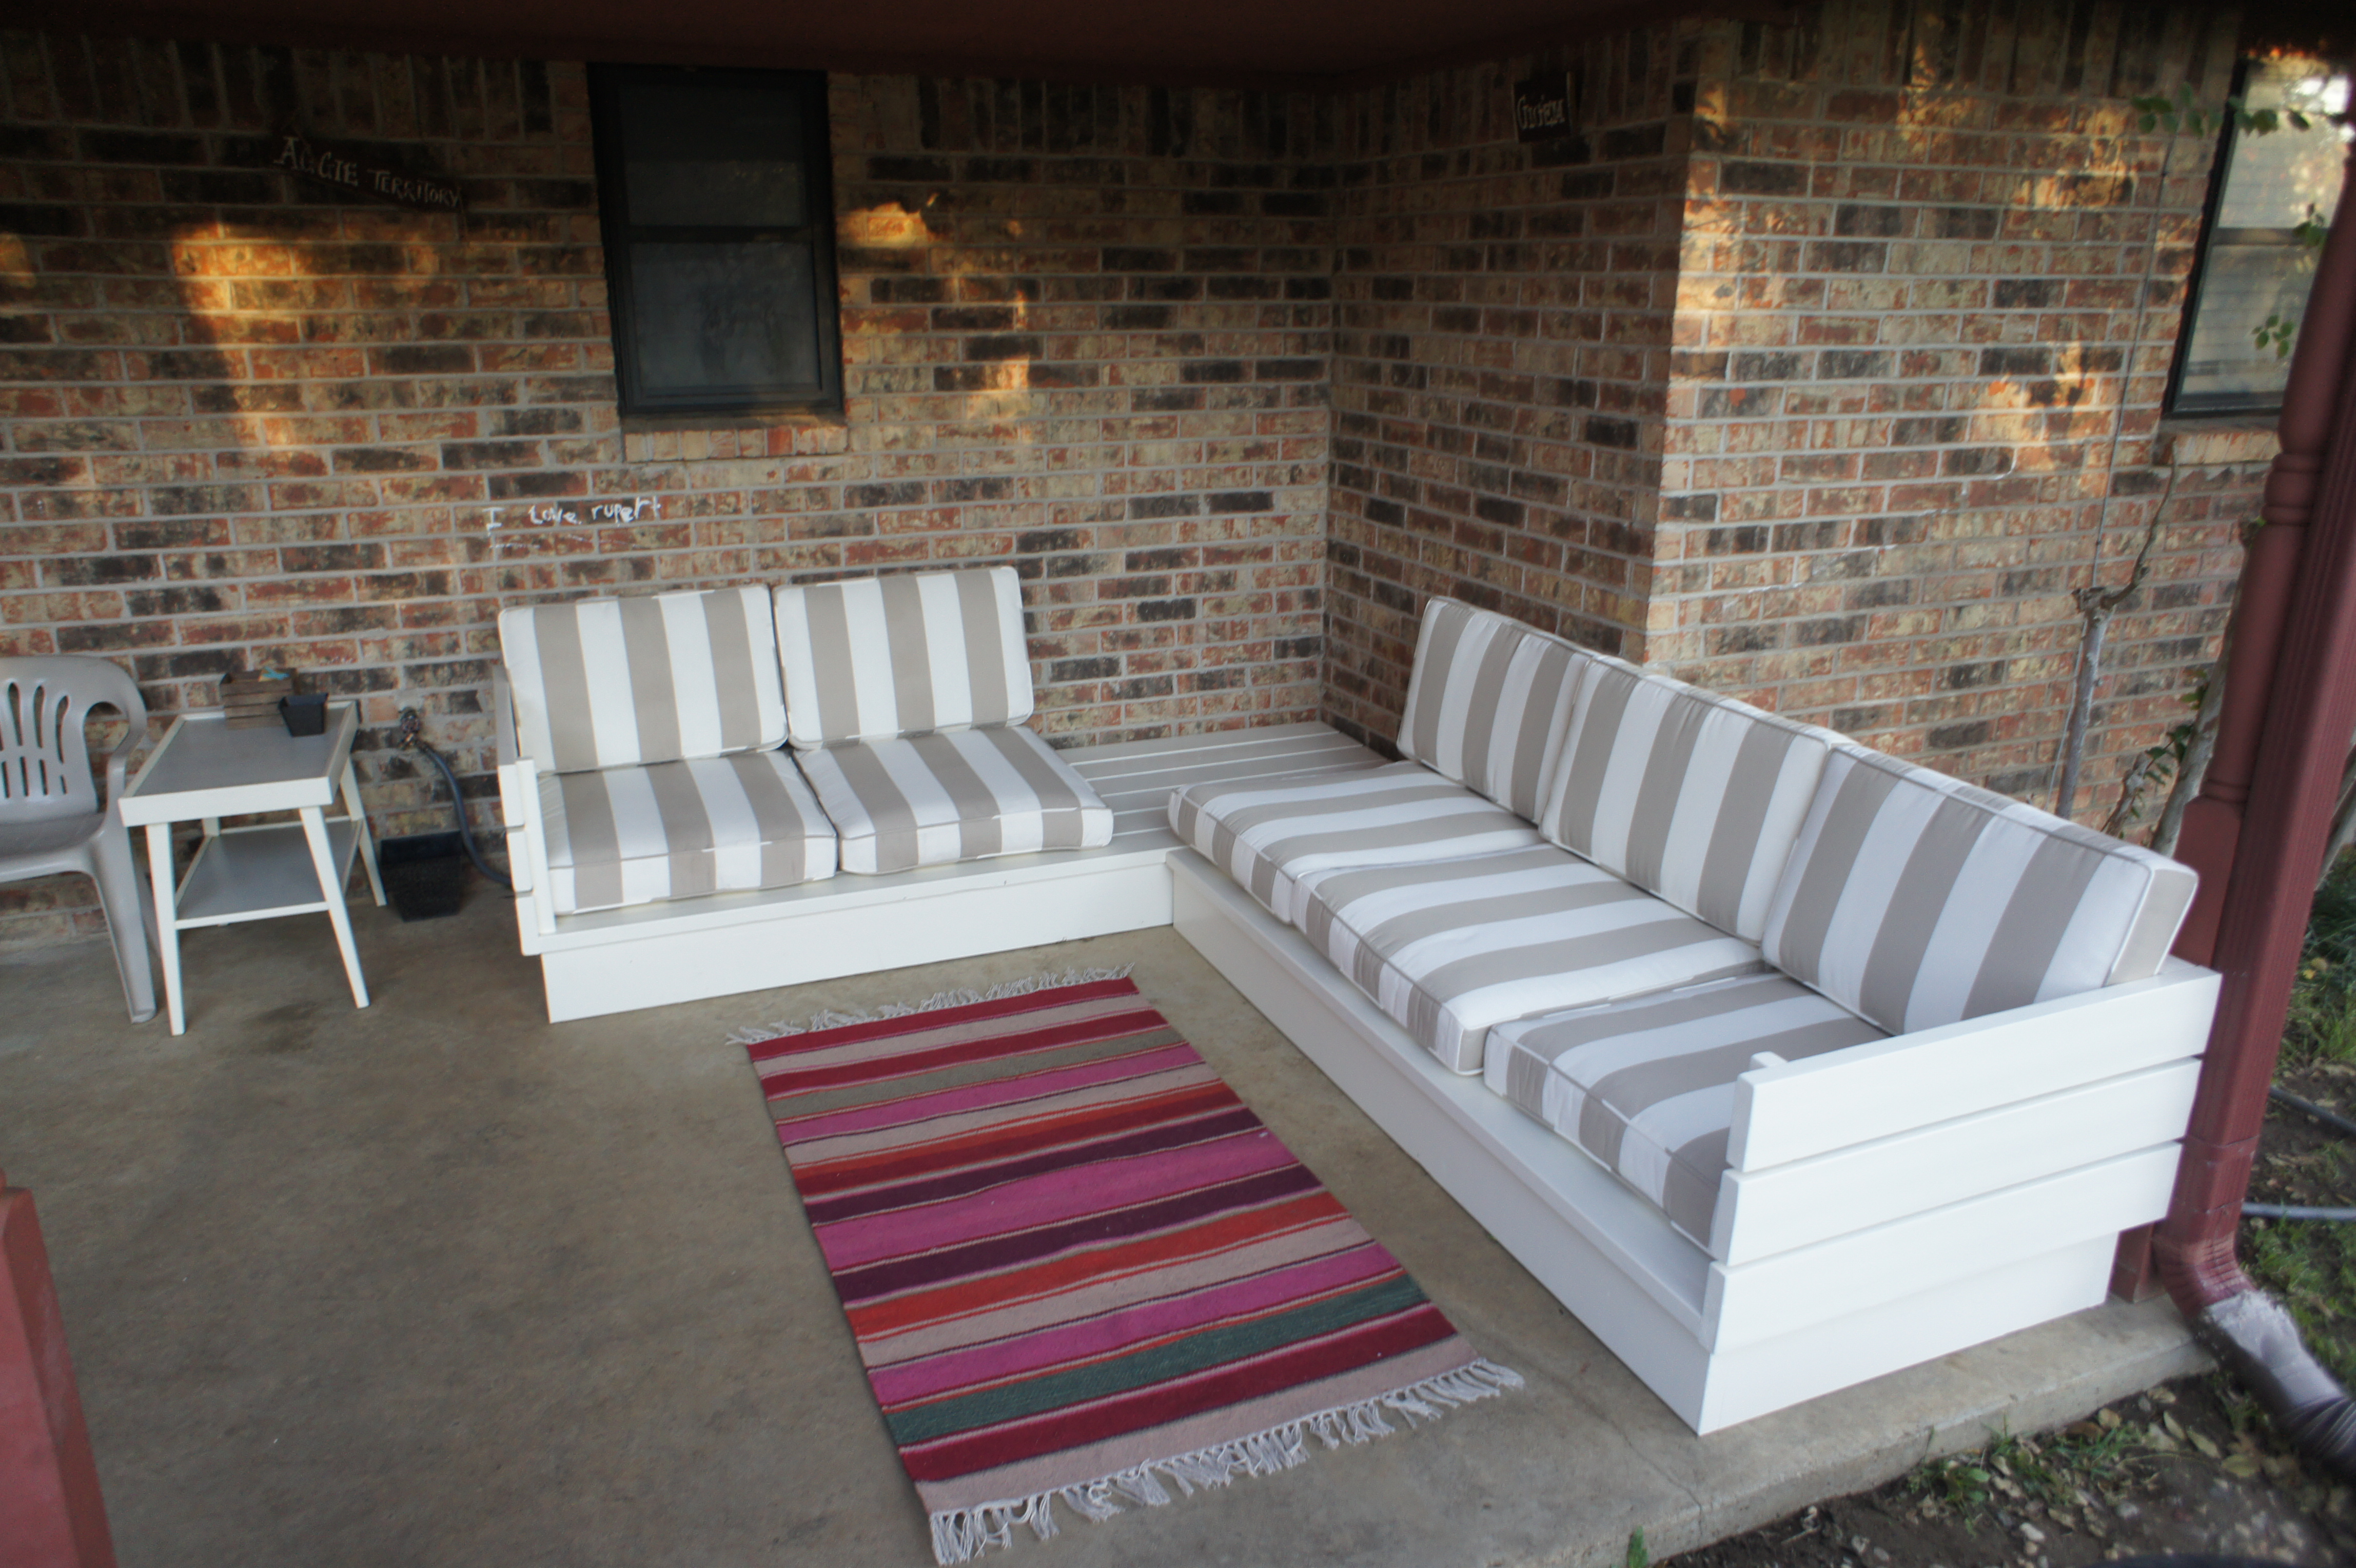 Patio Sectional Plans Ana White | Outdoor Sectional Couch - Diy Projects